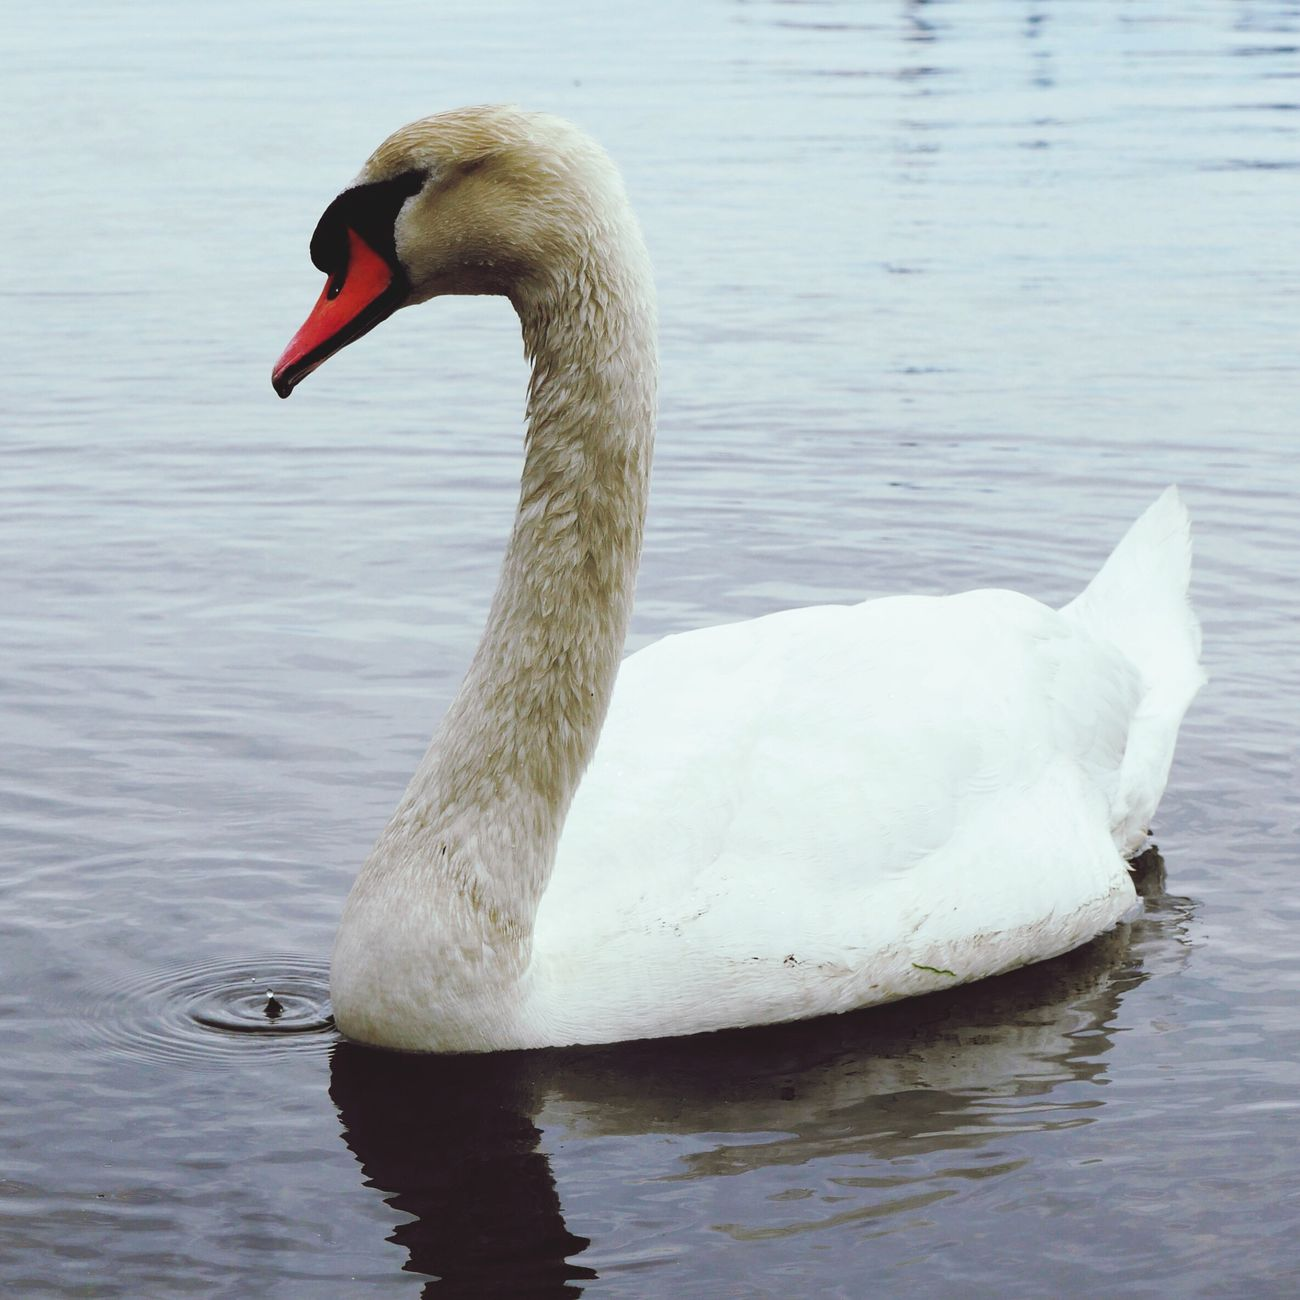 One Animal Animal Themes Animals In The Wild Lake Water White Color Animal Wildlife Waterfront Swan No People Nature Day Bird Outdoors Swimming Close-up